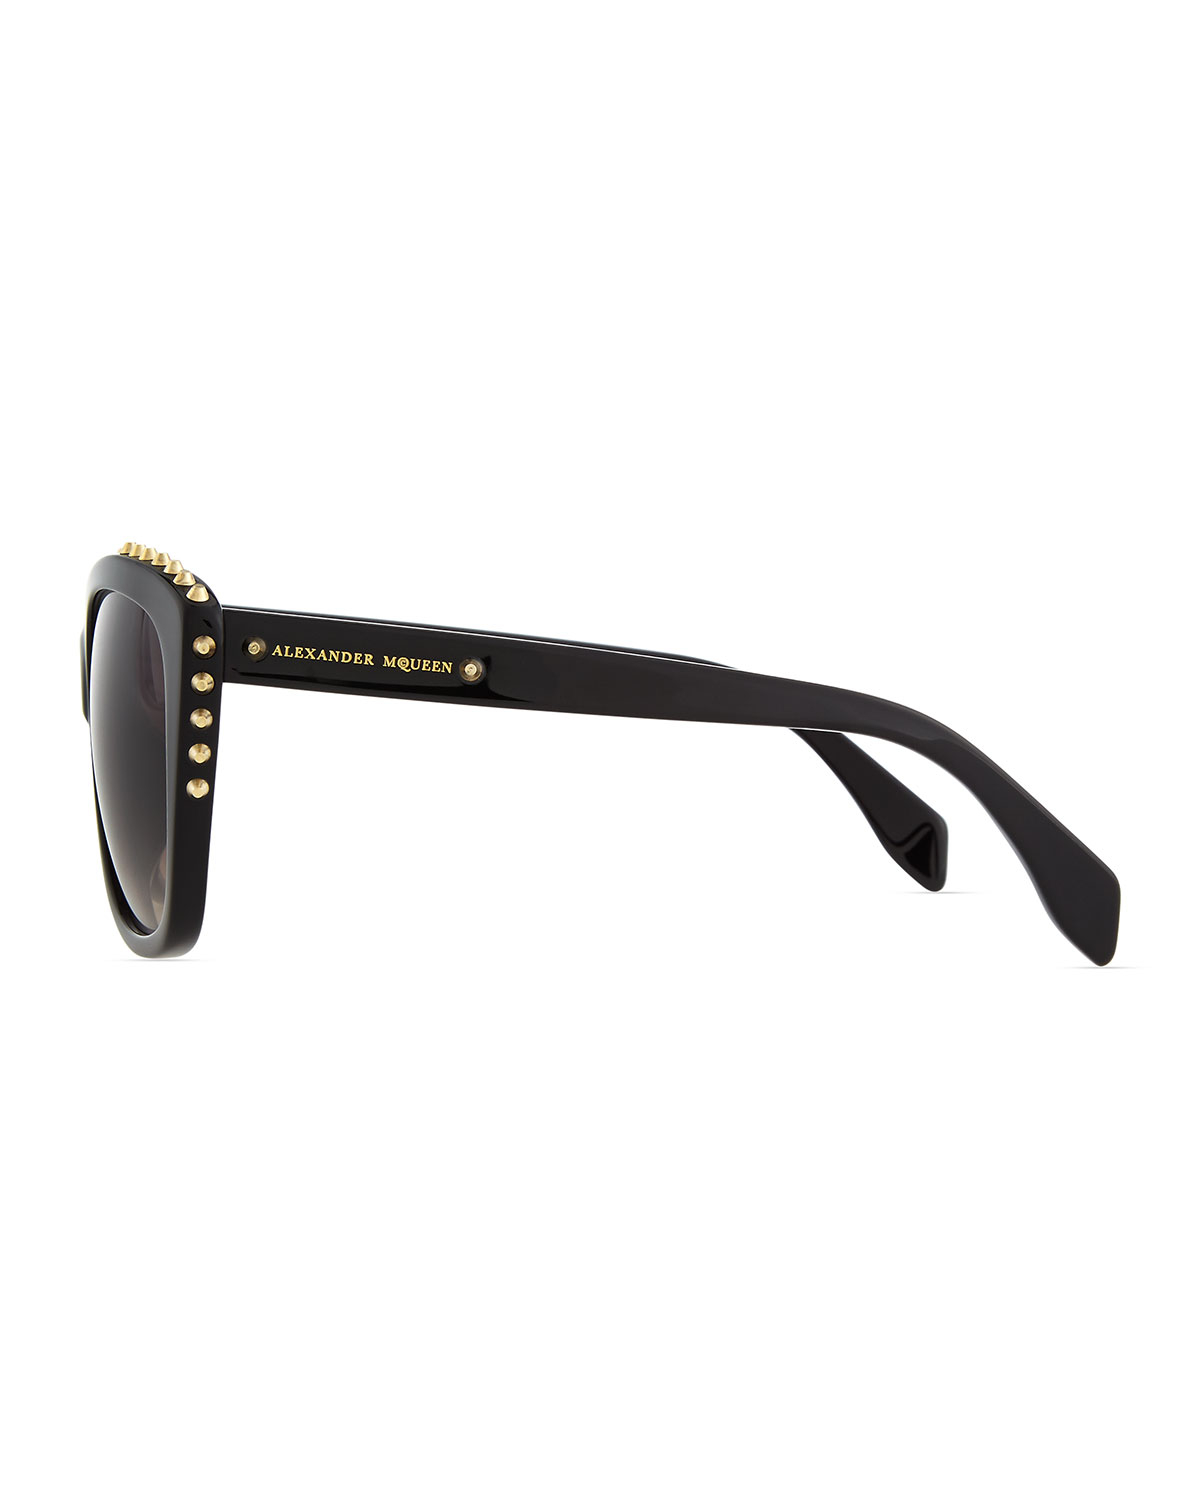 Mens Alexander Mcqueen Sunglasses  alexander mcqueen studded squared cat eye sunglasses in black for